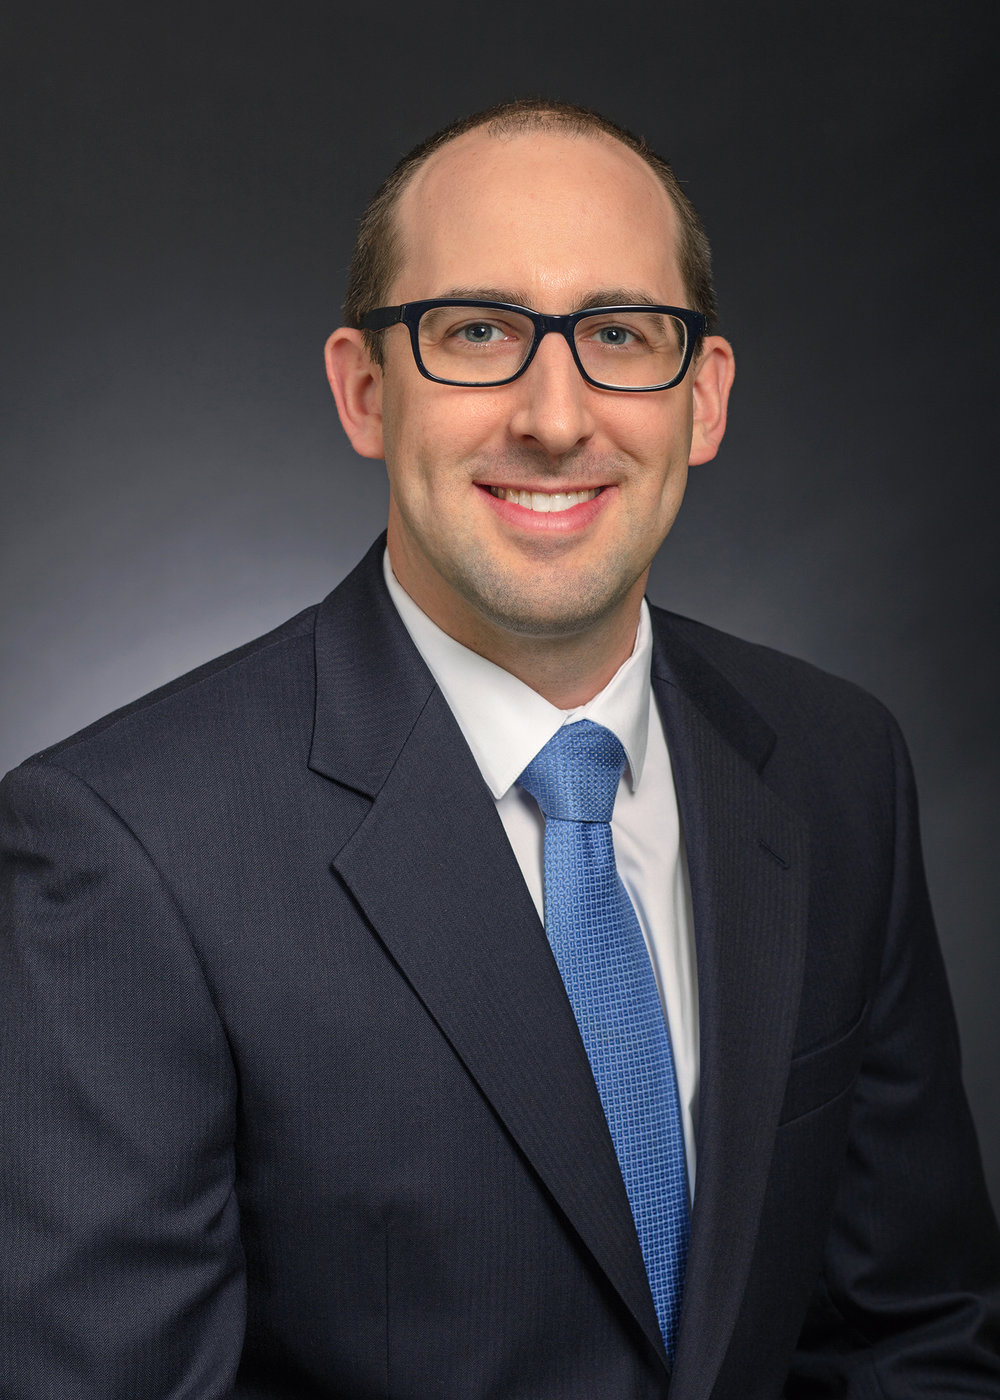 Dr. Zach Rossman - Dr. Zach Rossman graduated from the Indiana University School of Optometry and completed a residency with interest in Ocular Disease Management. Dr. Rossman is a member of the Indiana Optometric Association and American Optometric Association.